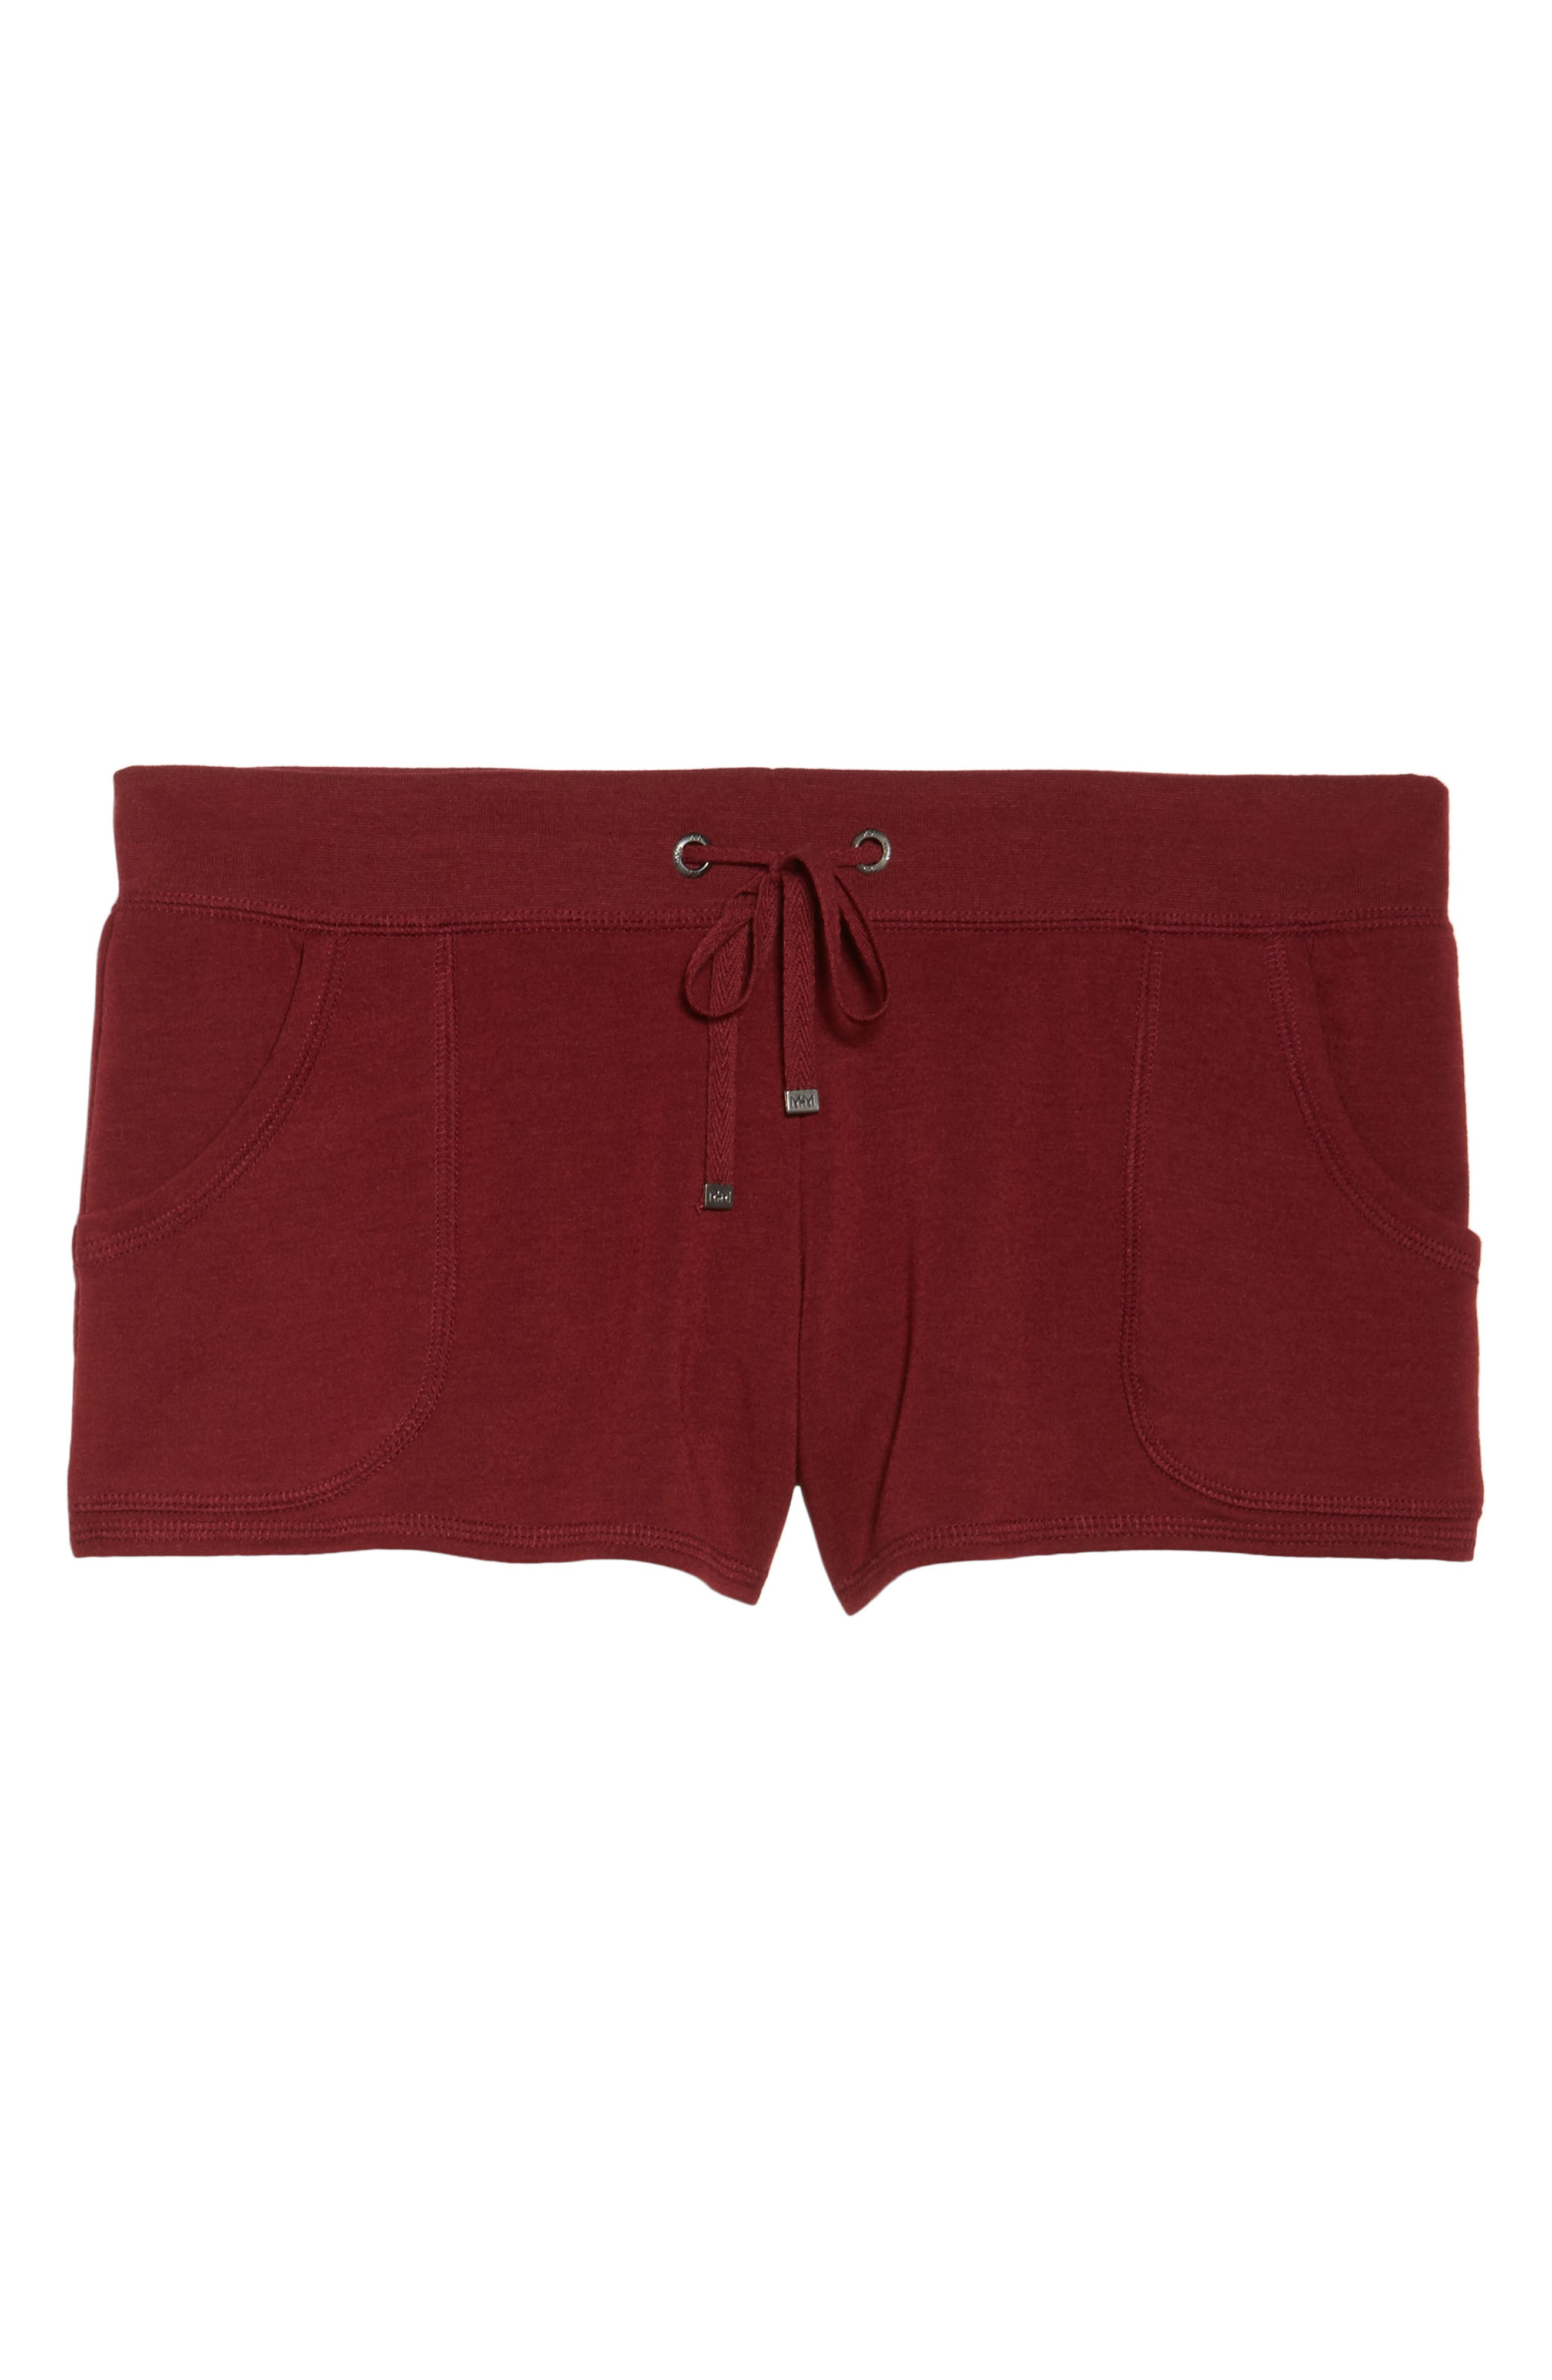 Down To The Details Lounge Shorts,                             Alternate thumbnail 4, color,                             Red Grape